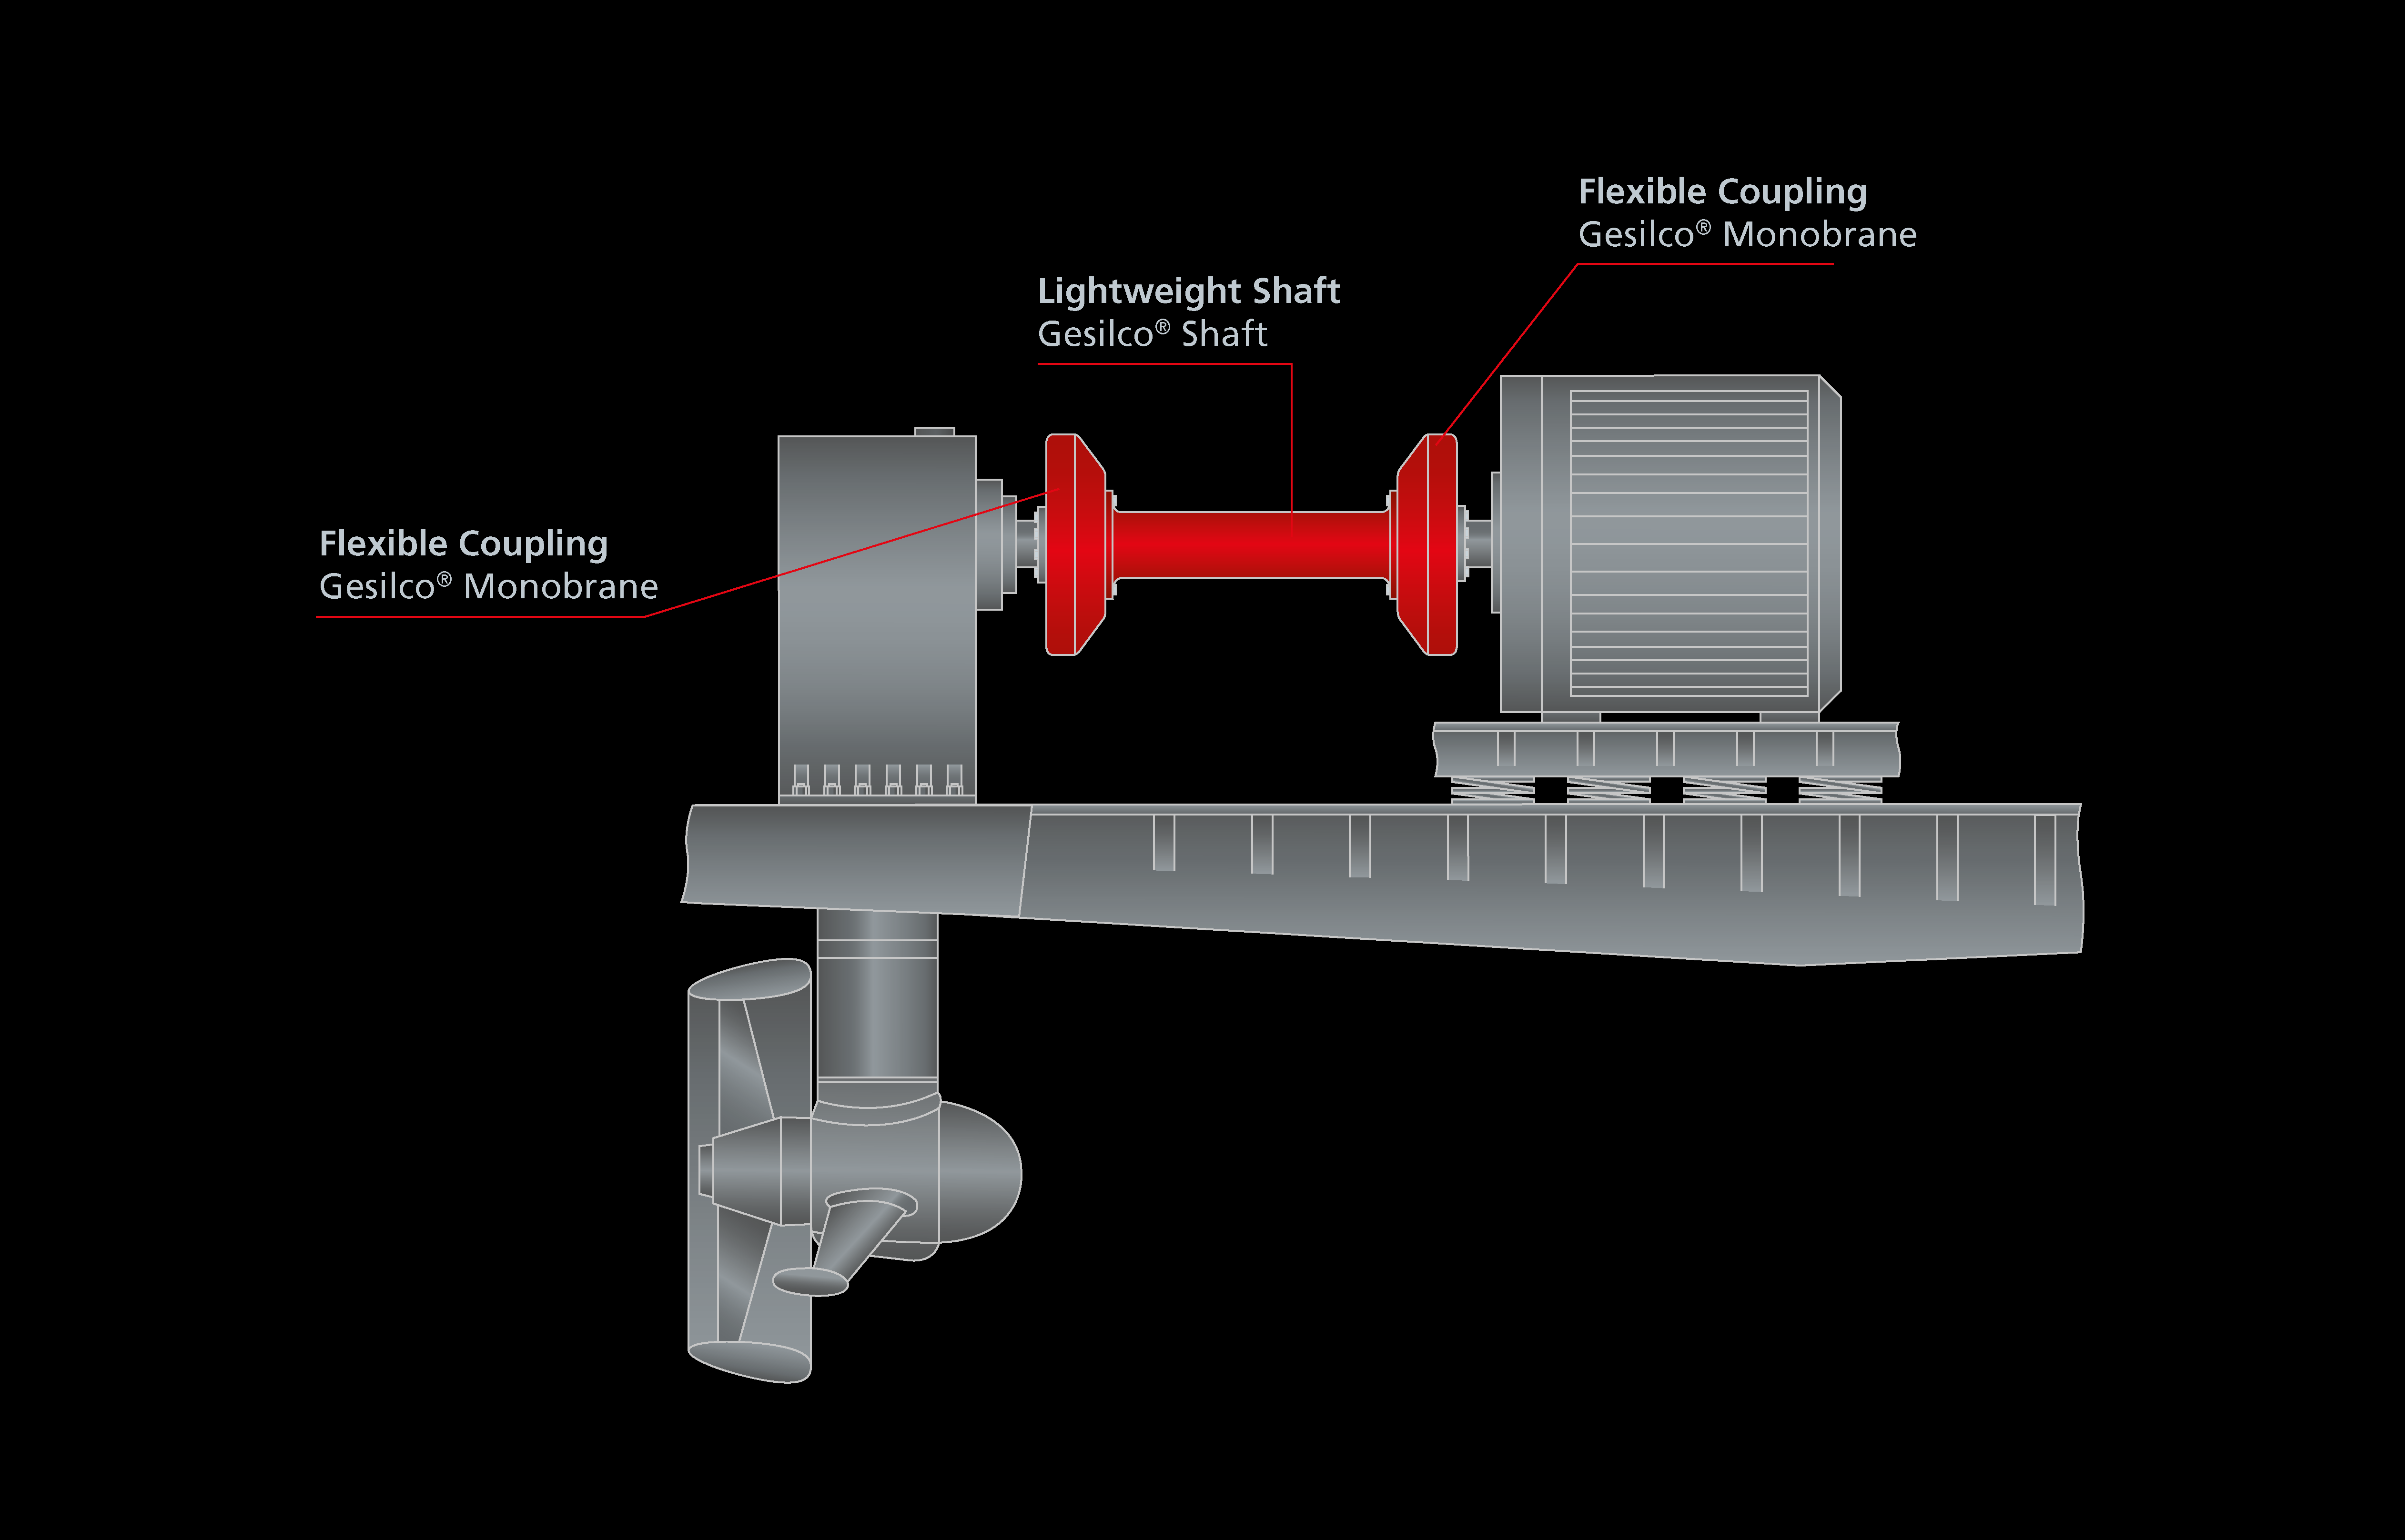 3 Mechanical Azimuth Thruster With An Elastically Mounted Electric Motor